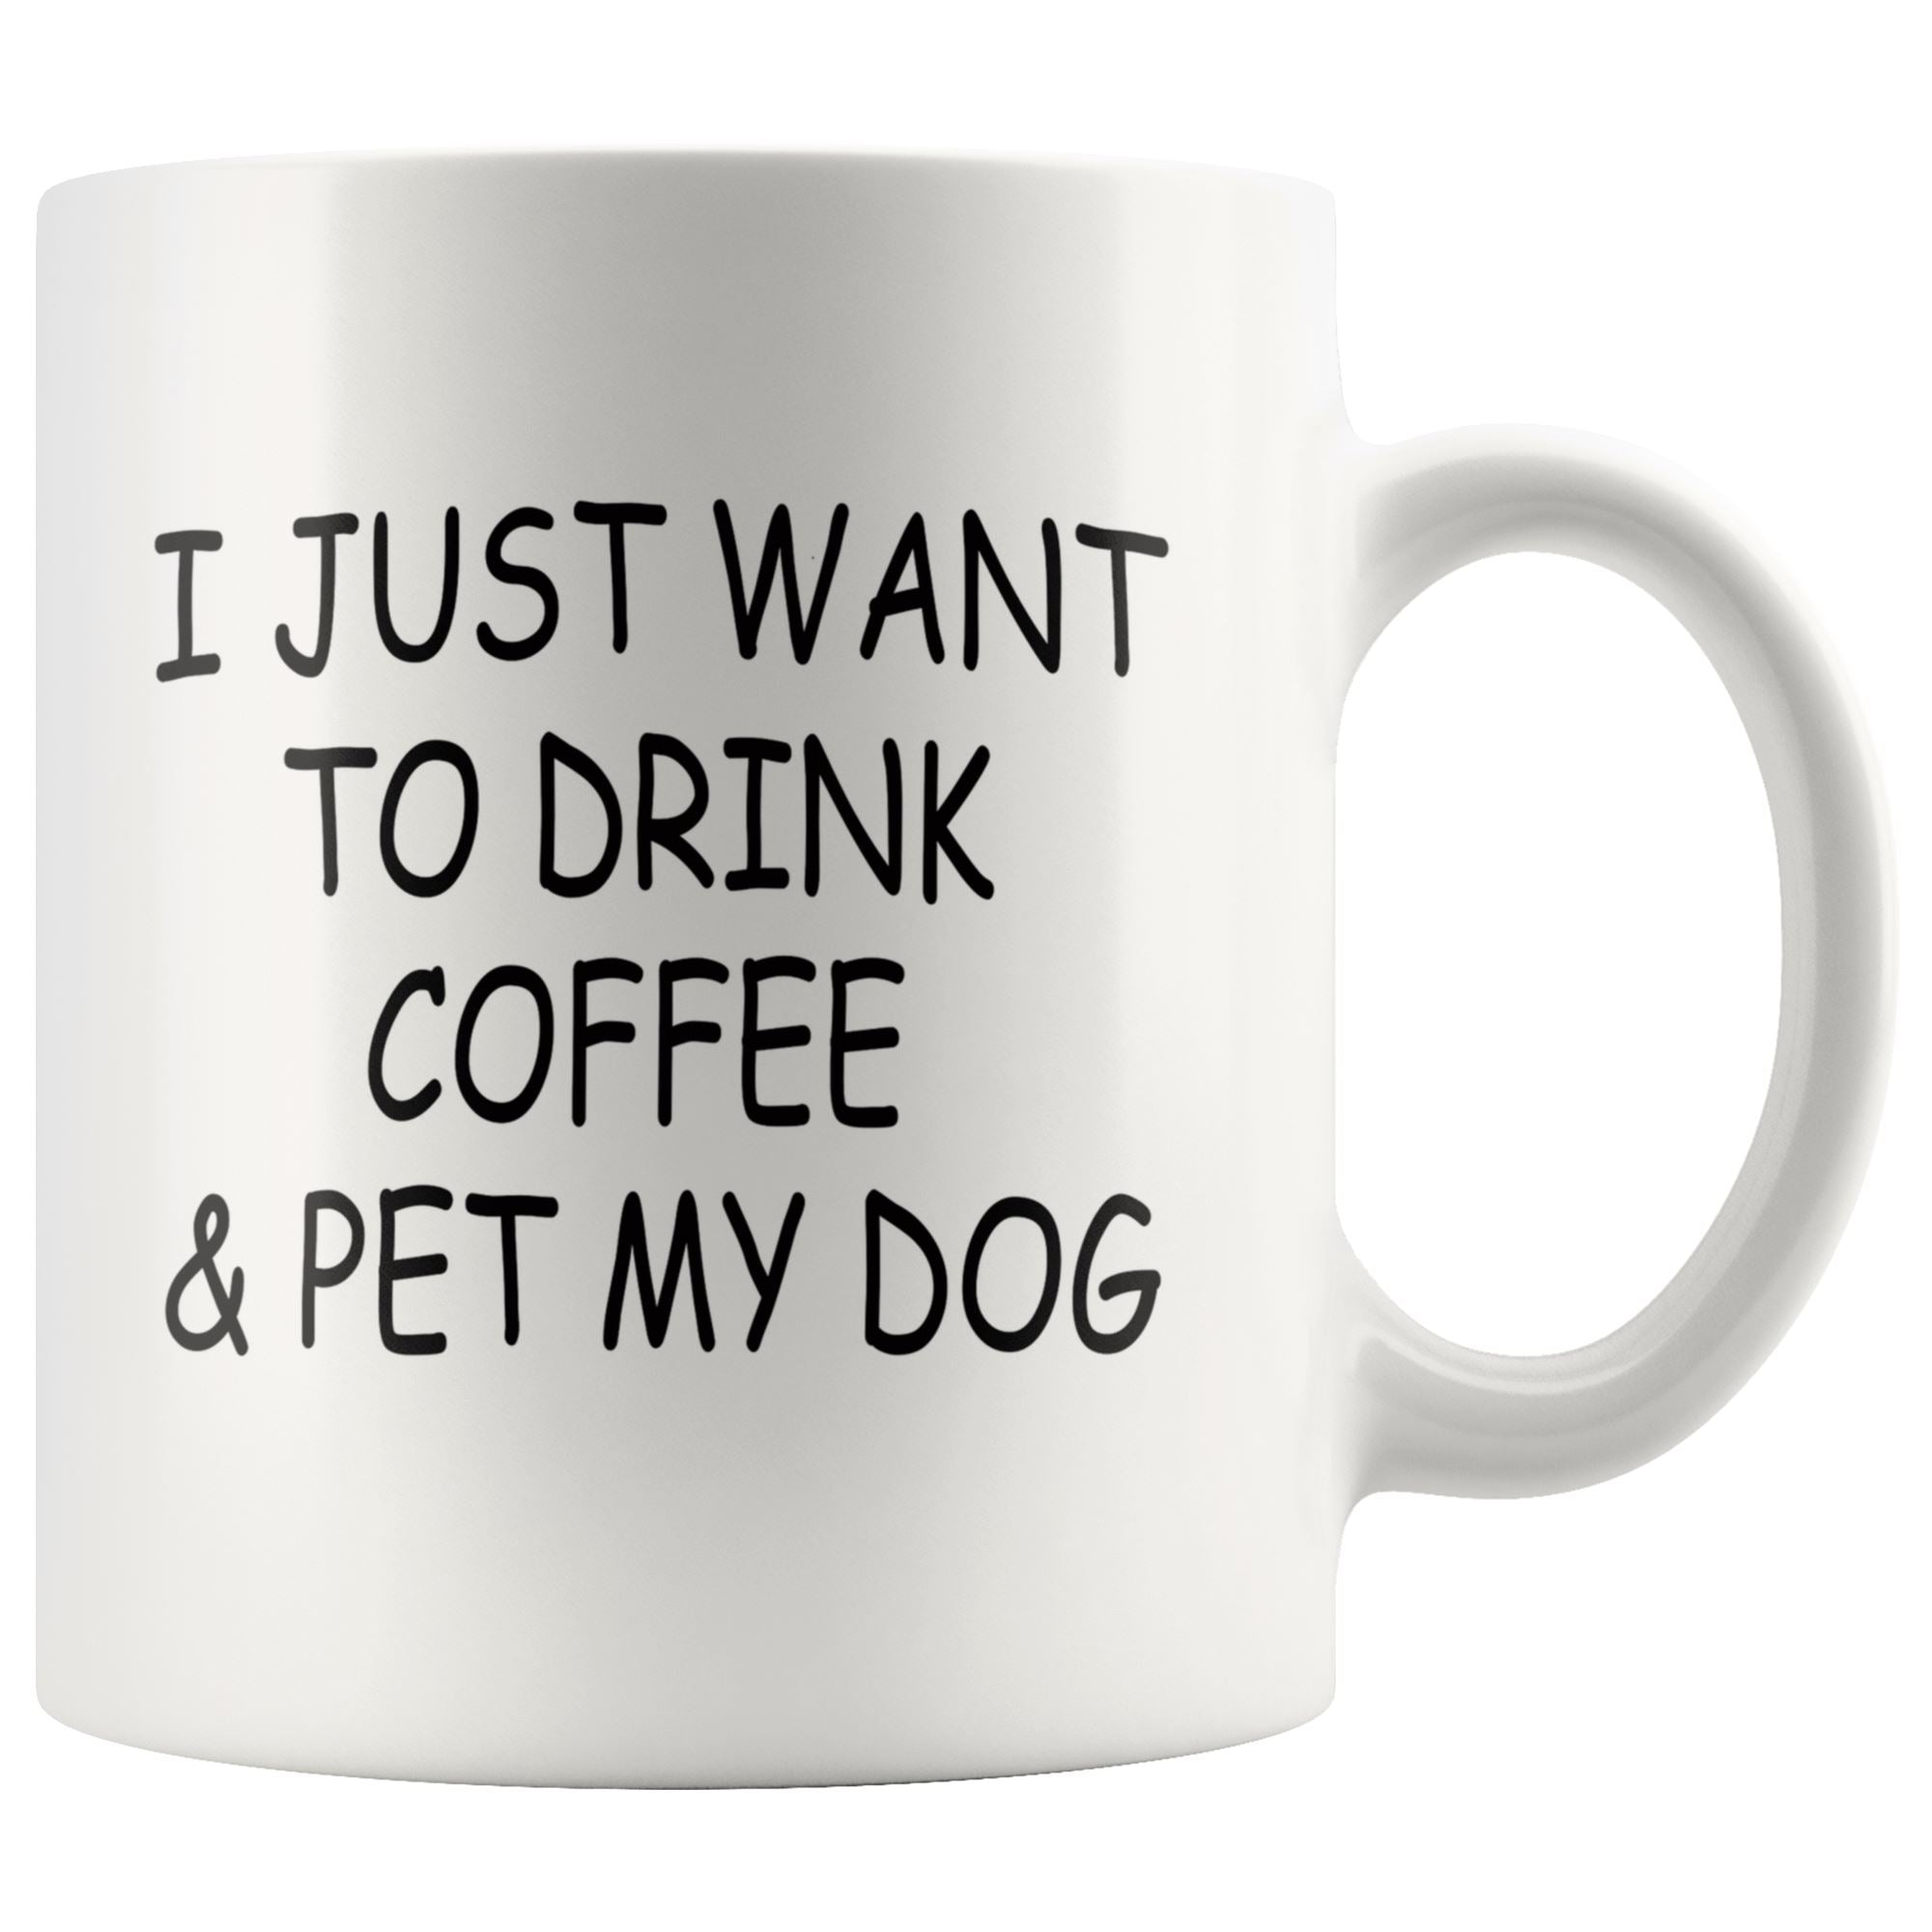 Pet My Dog Mug Drinkware teelaunch 11oz Mug